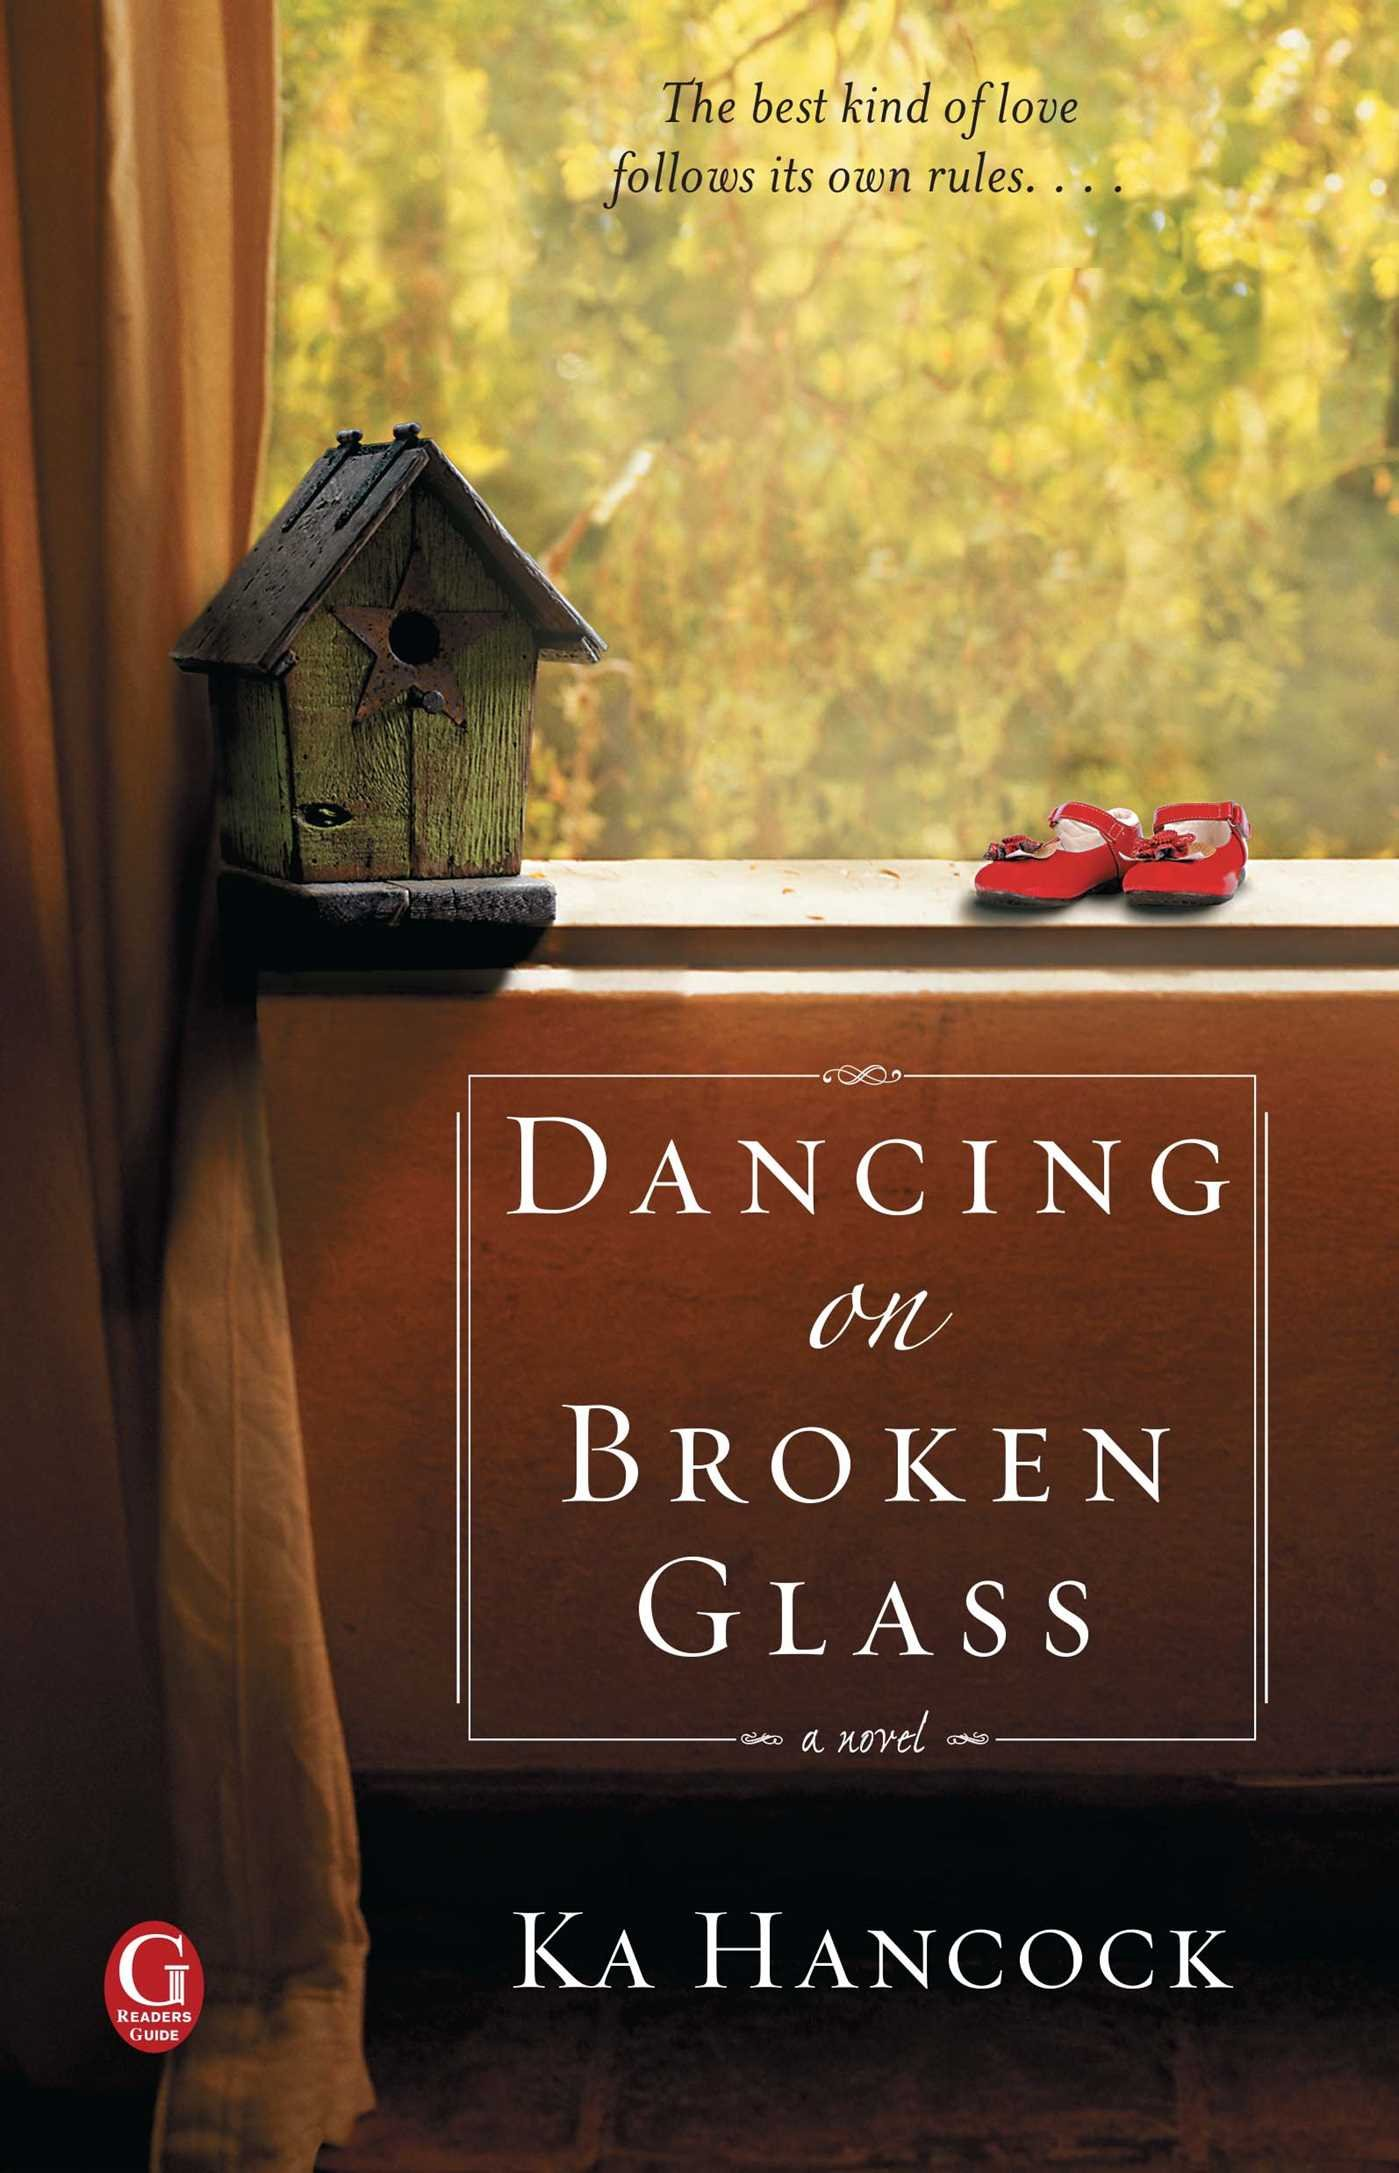 Dancing Broken Glass Ka Hancock product image